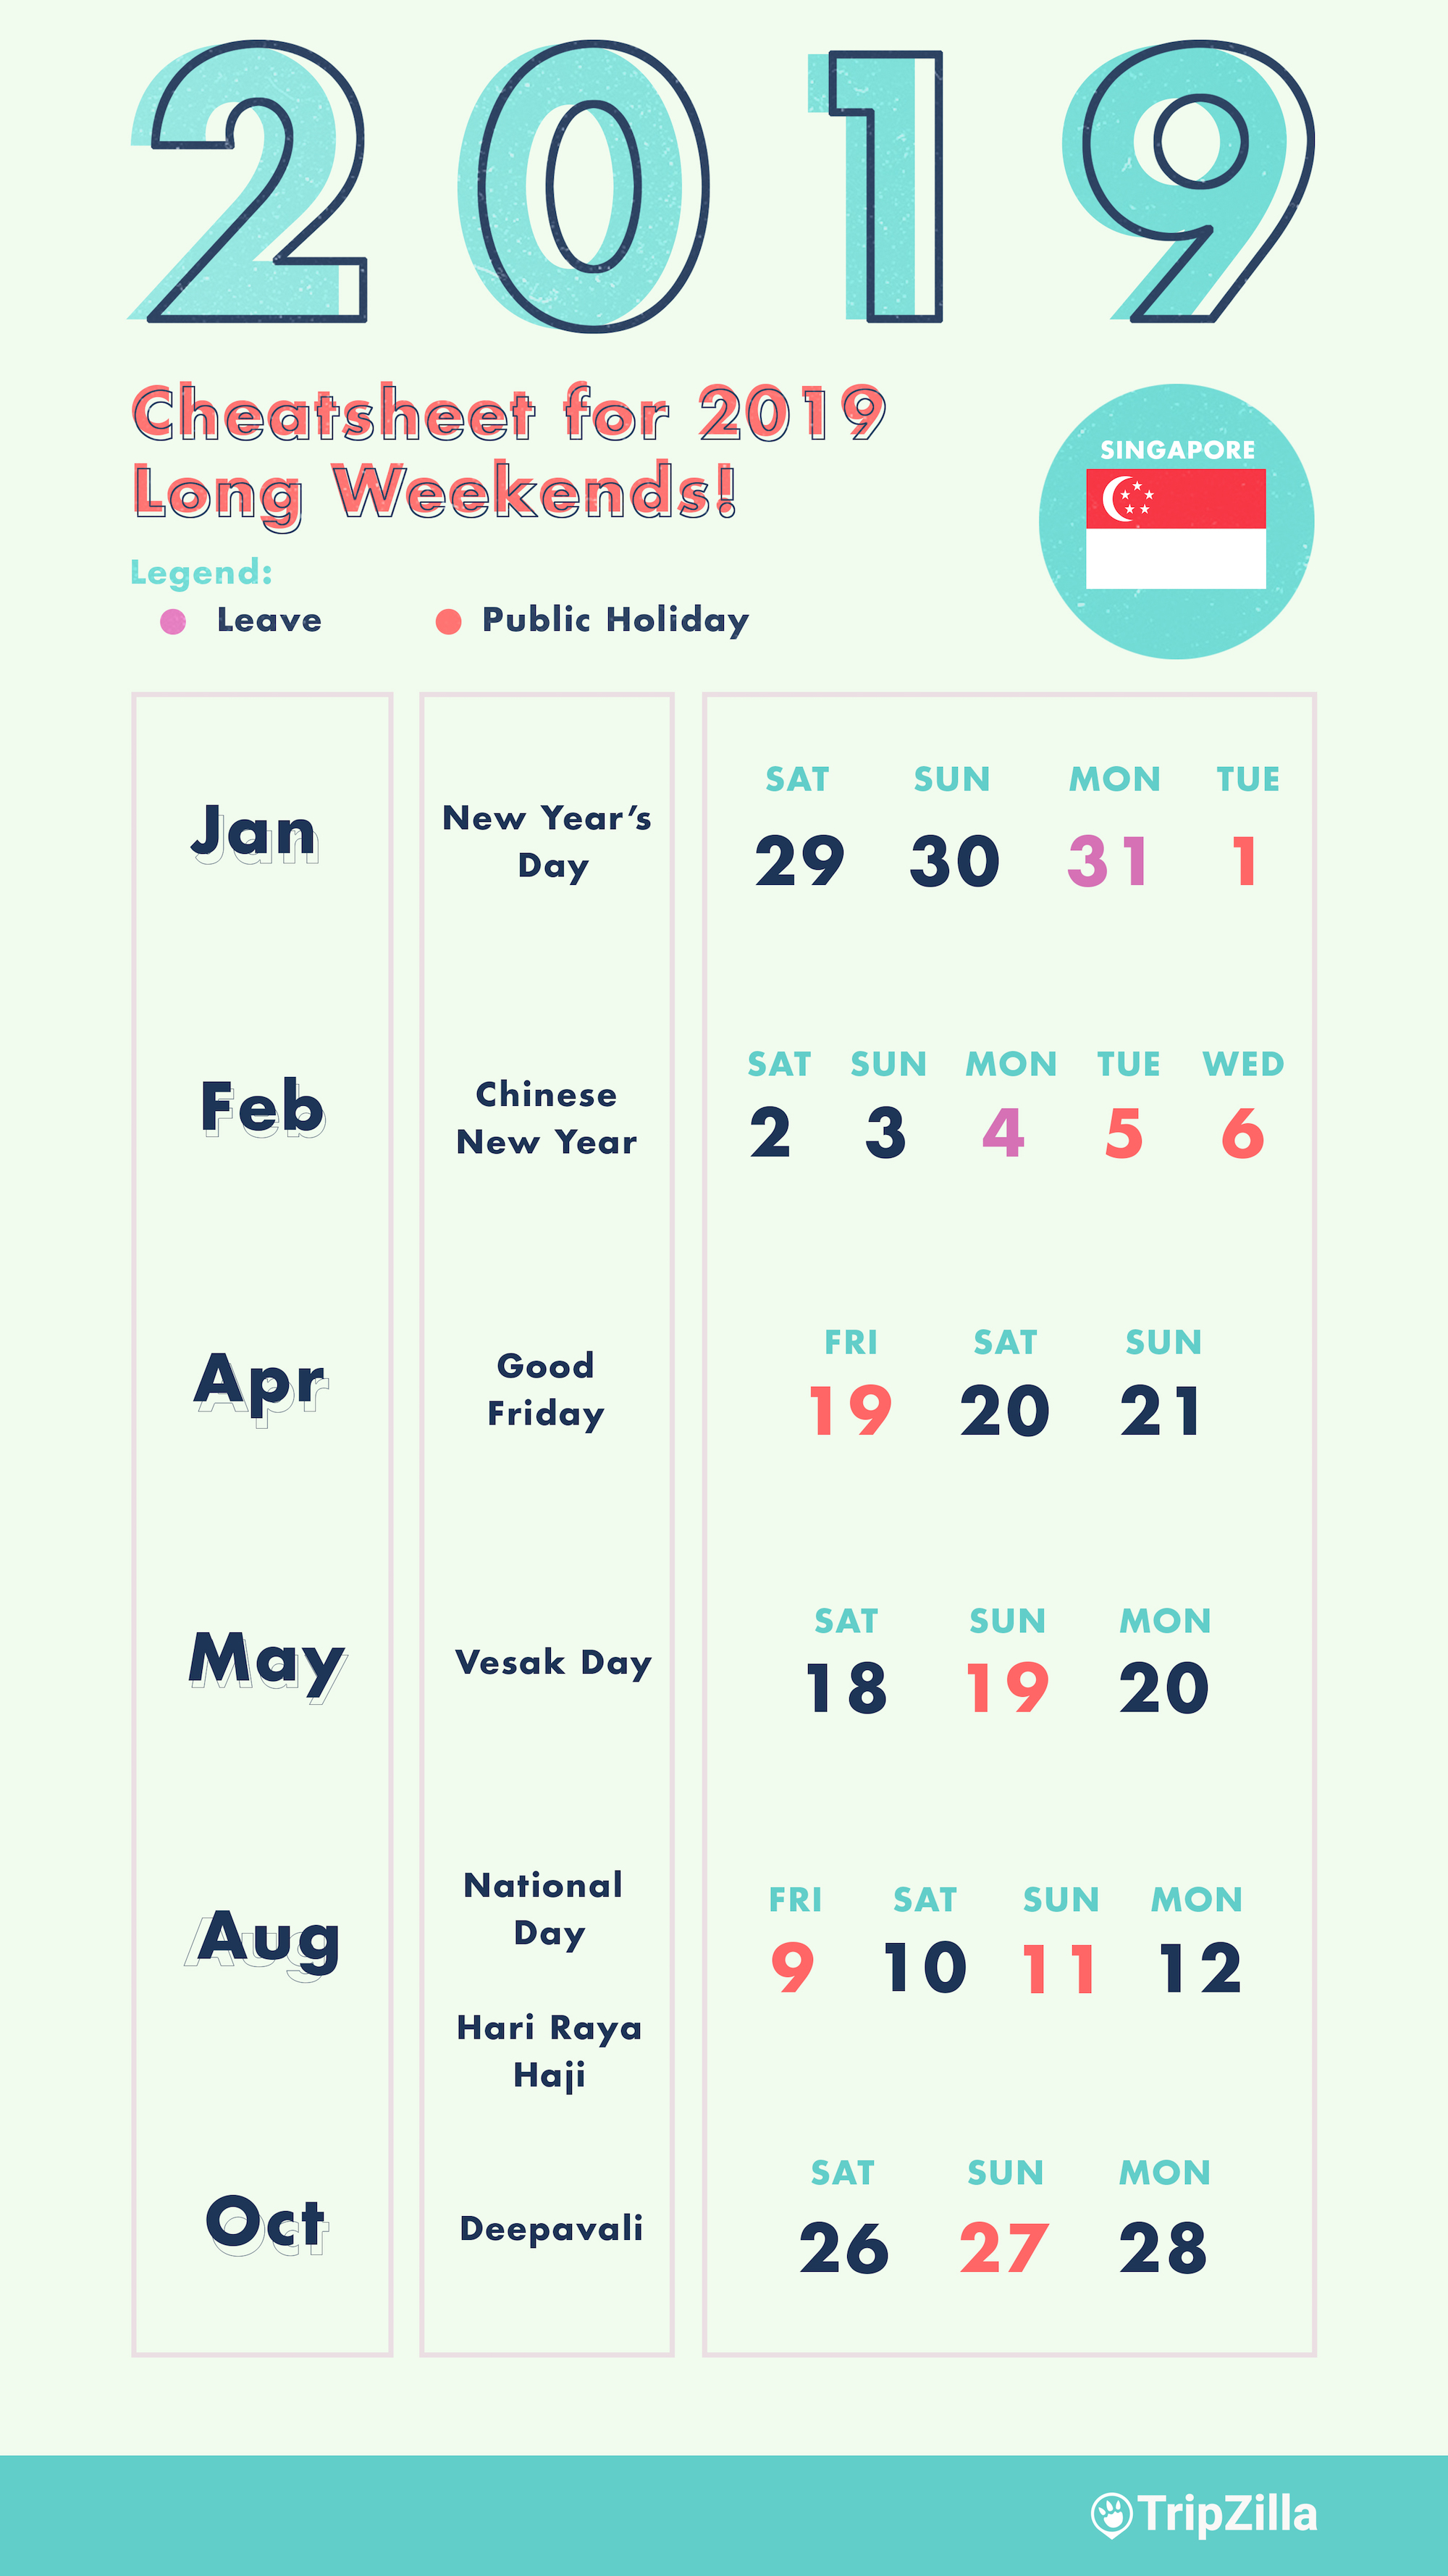 Chinese New Year 2019 Calendar Malaysia With 6 Long Weekends In Singapore Bonus Cheatsheet